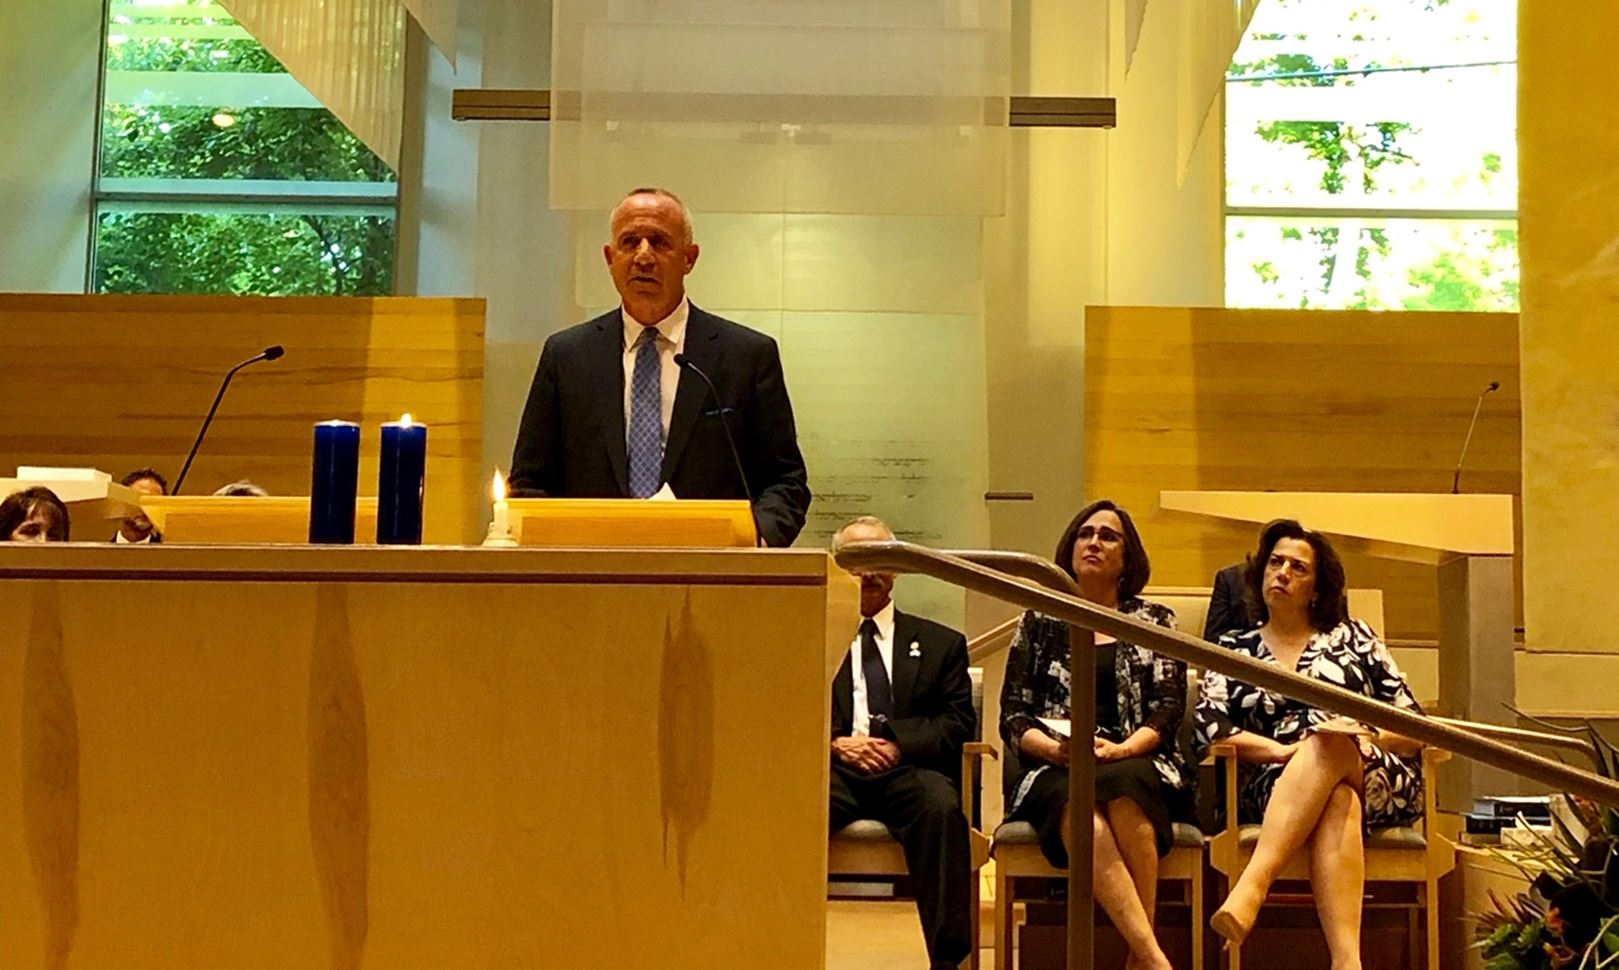 Mayor Darrell Steinberg delivers remarks on the 20th anniversary of the firebombing of Jewish synagogues in Sacramento.